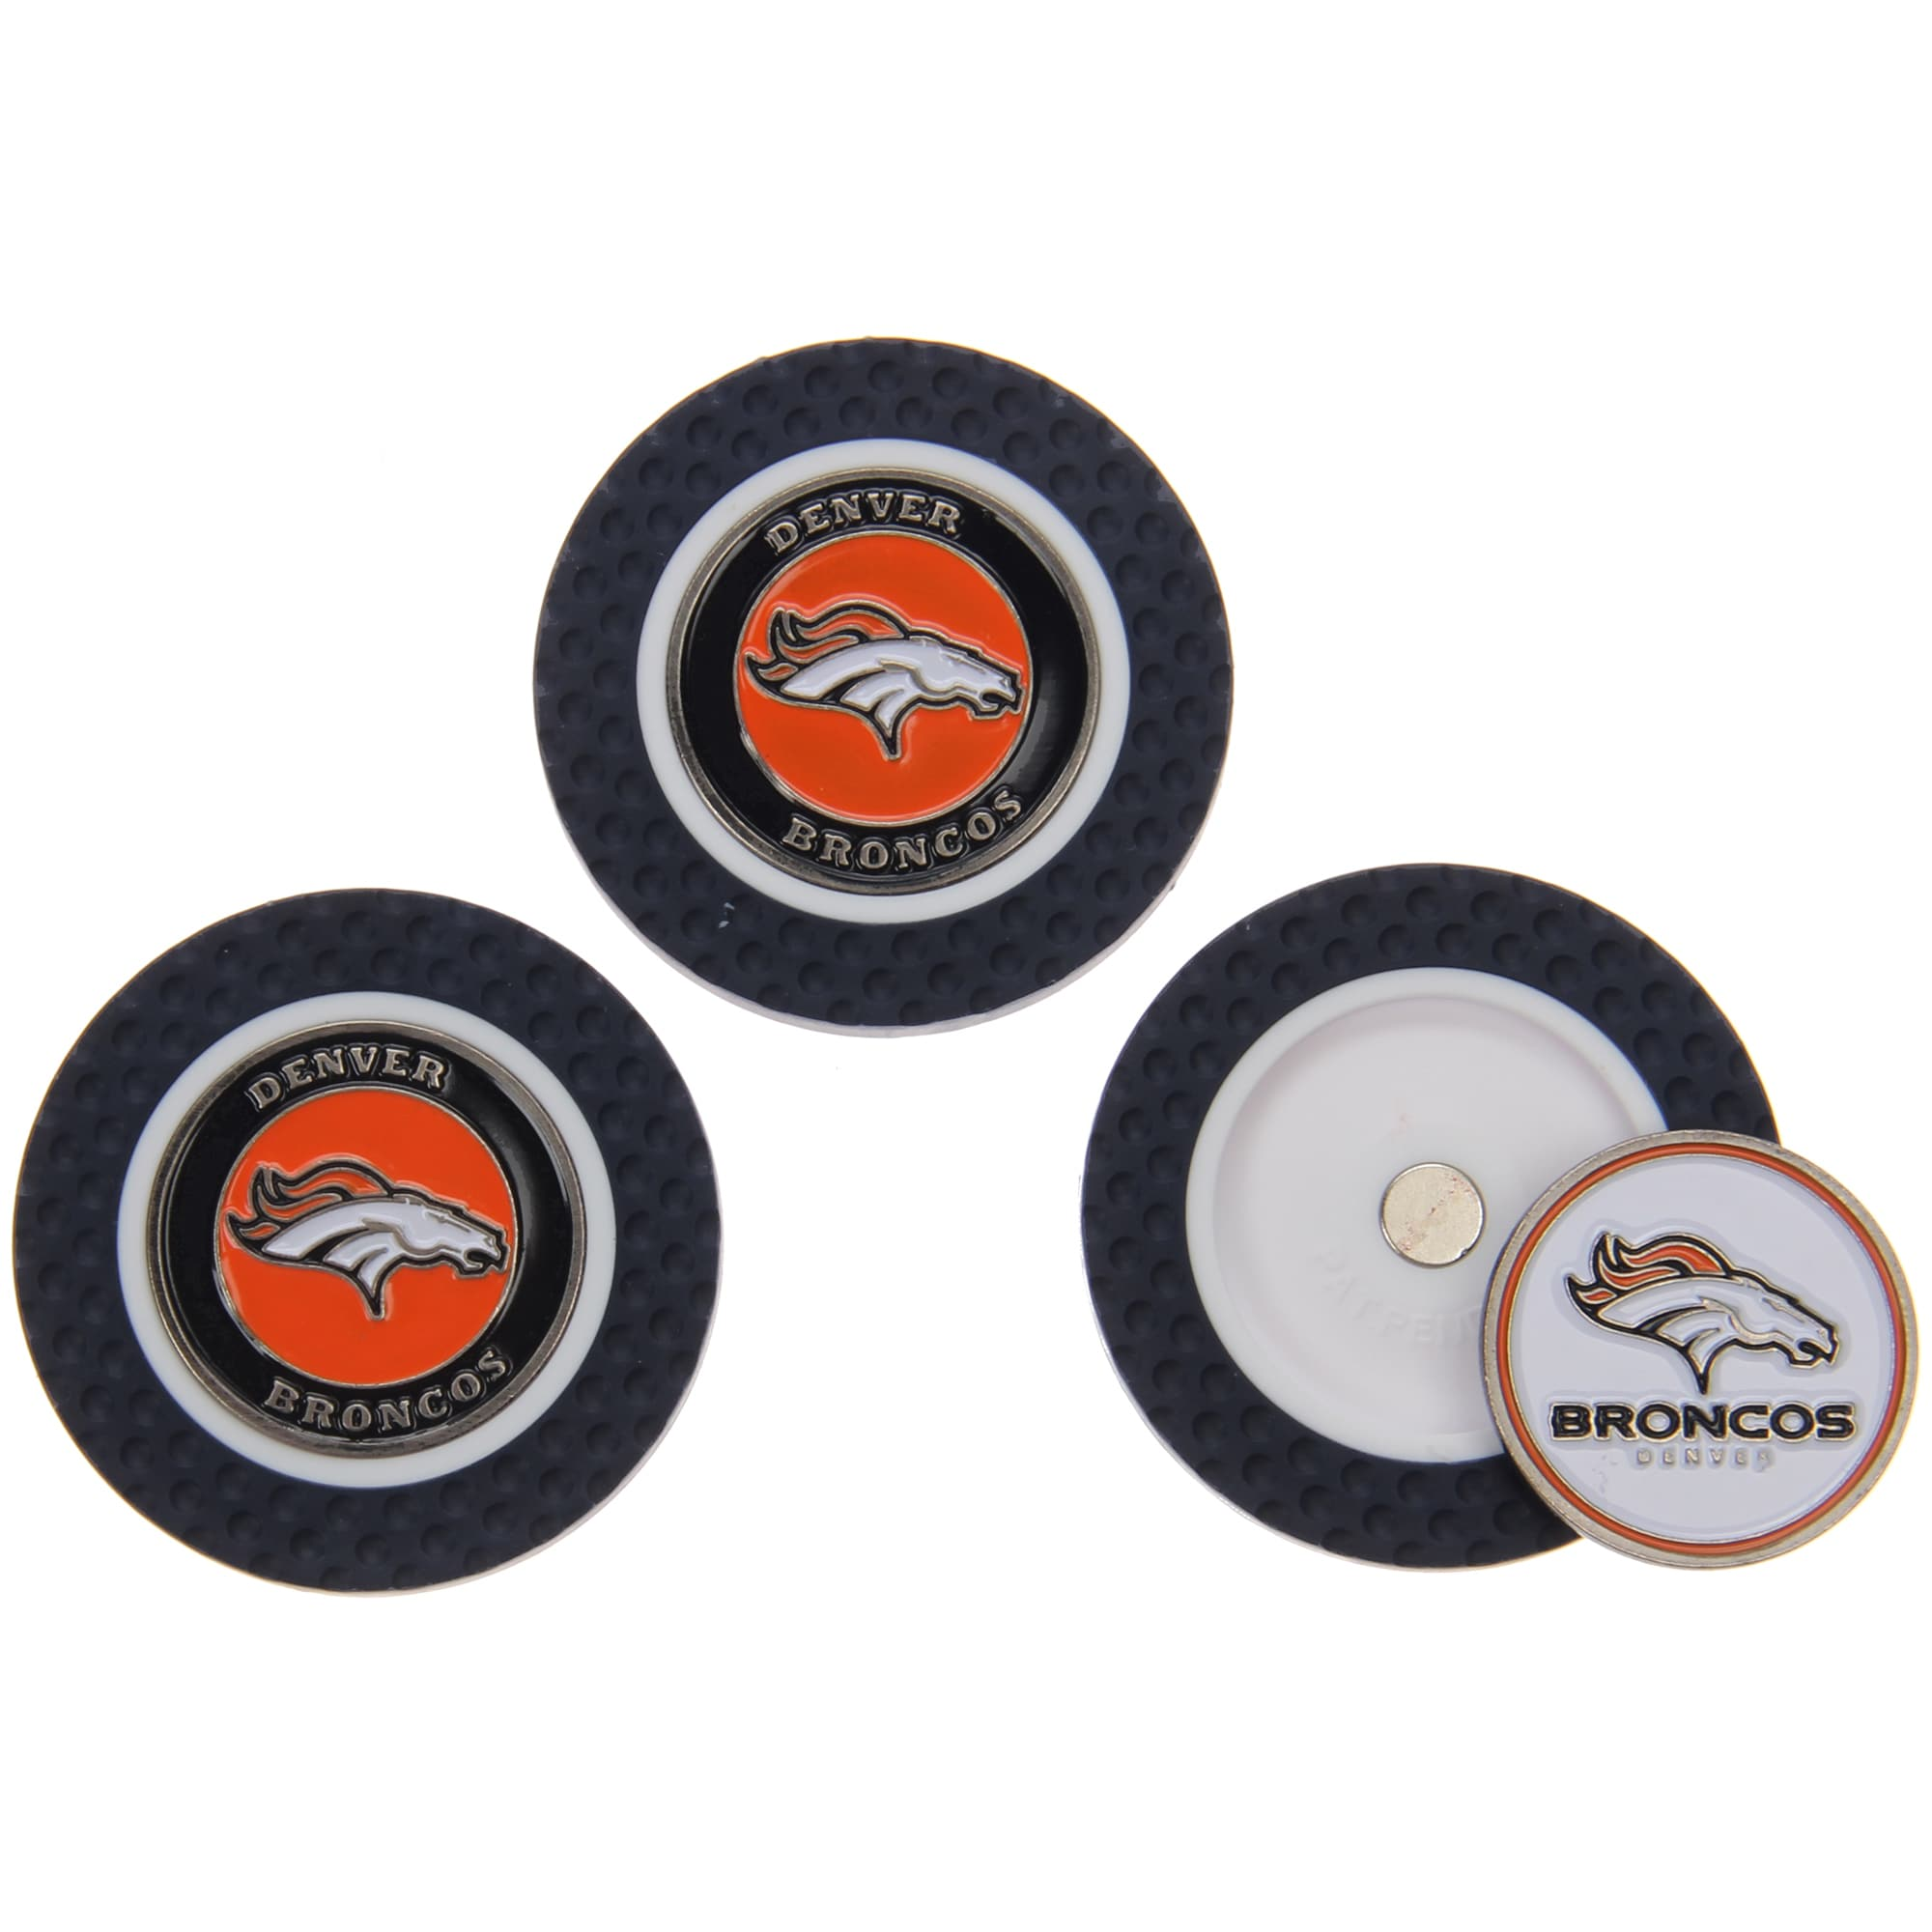 Denver Broncos 3-Pack Poker Chip Golf Ball Markers